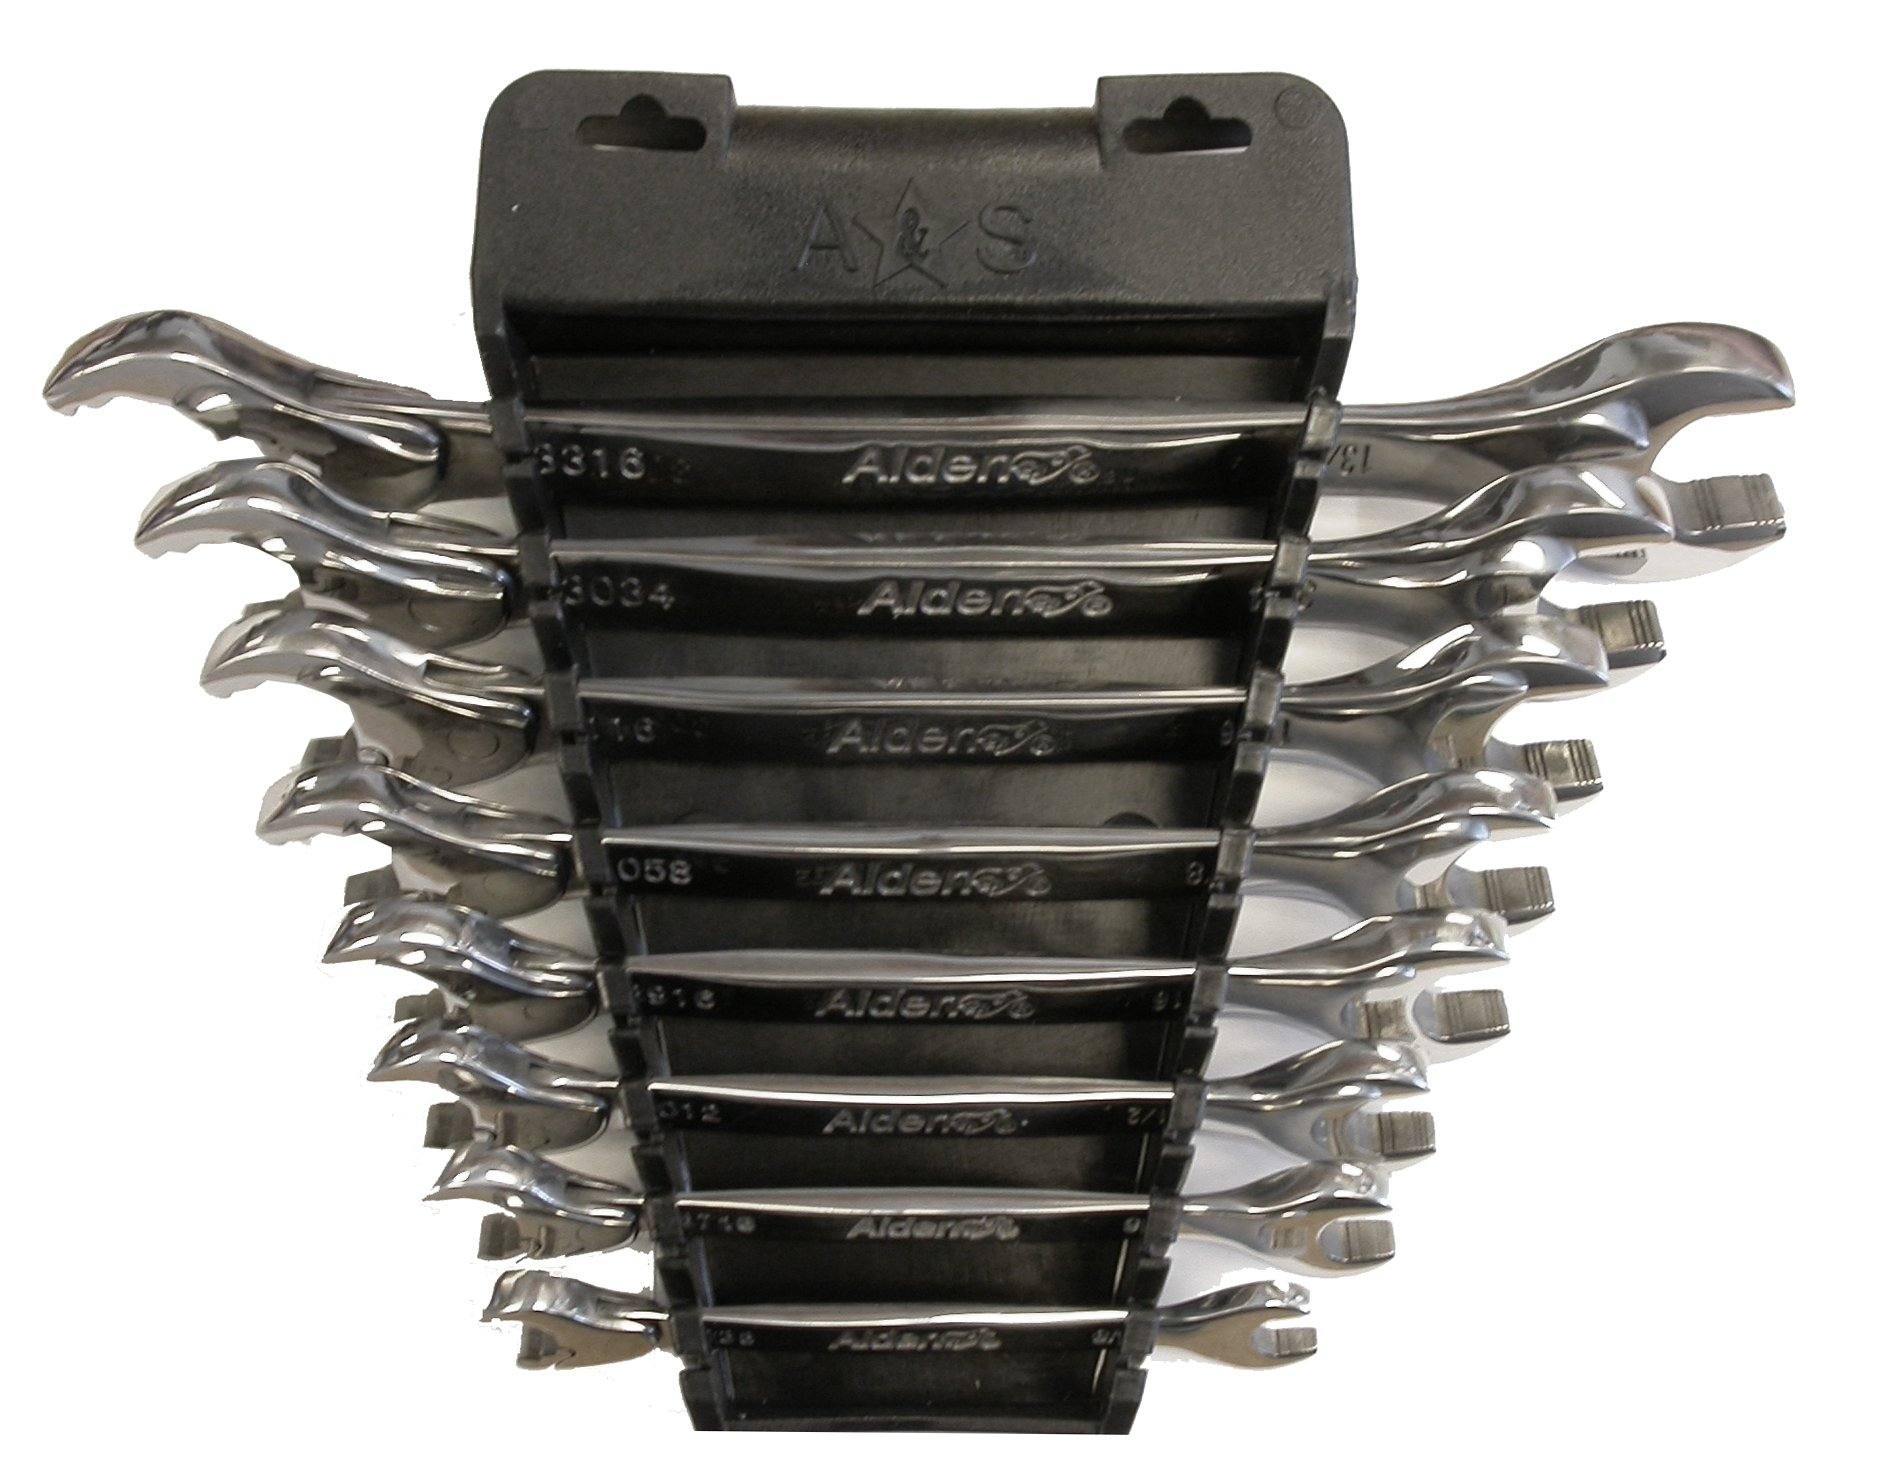 Alden Wrench 56048 Ratching Plus Open-End 8 Piece Wrench SAE Set by Alden